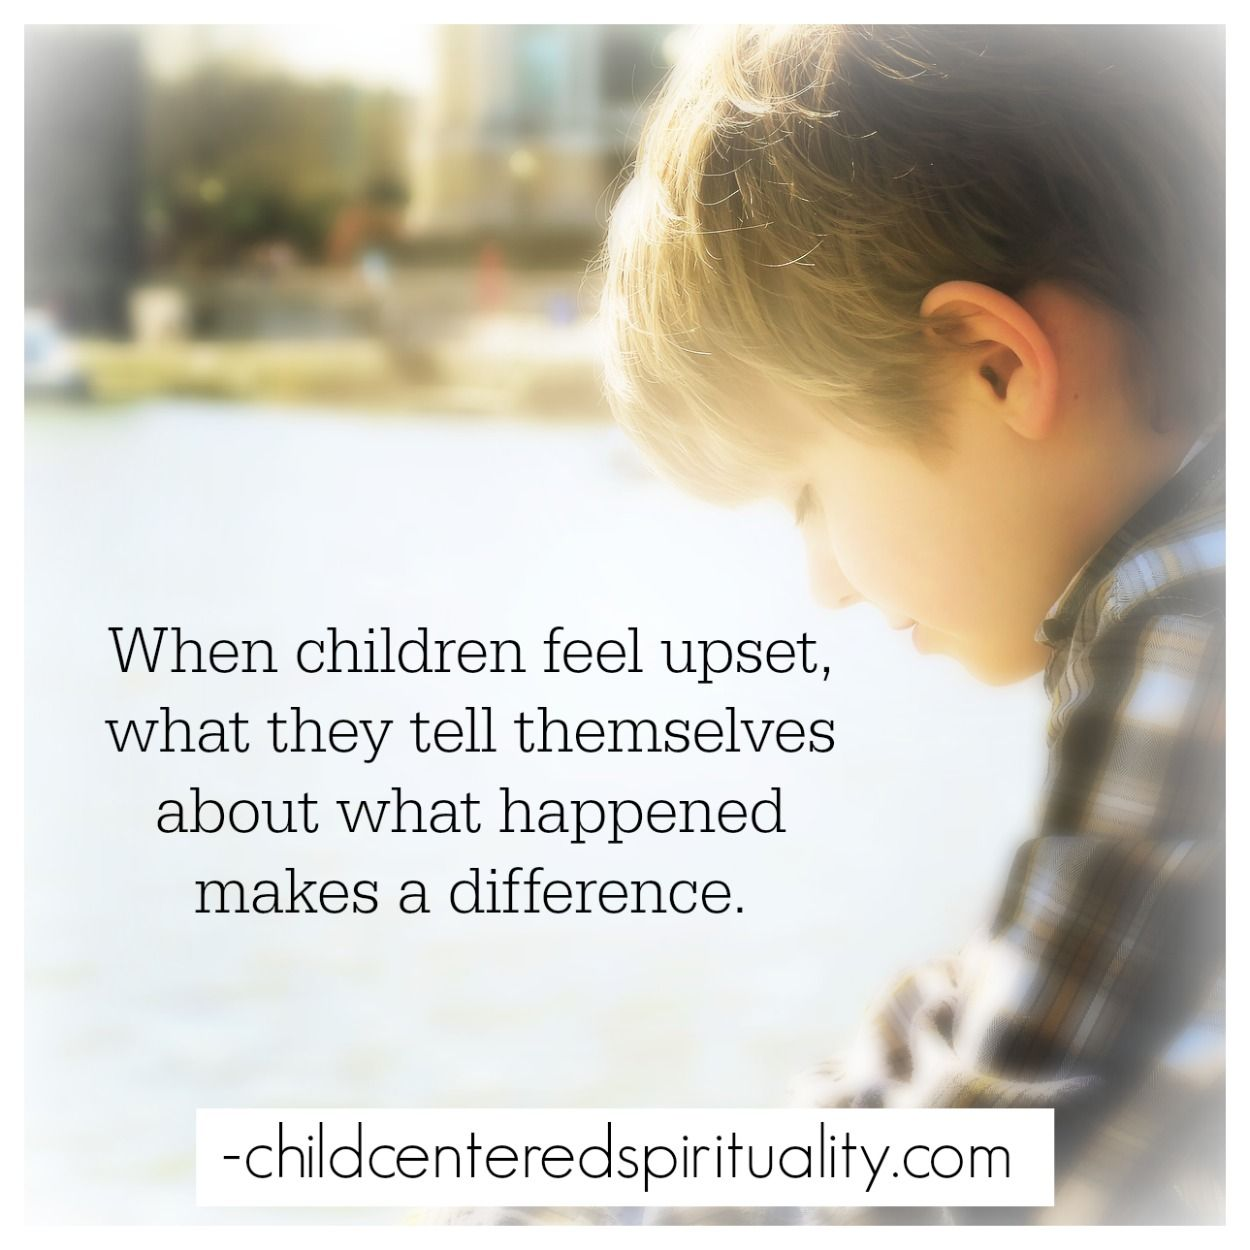 #Quote #Feelings #SelfTalk #Children